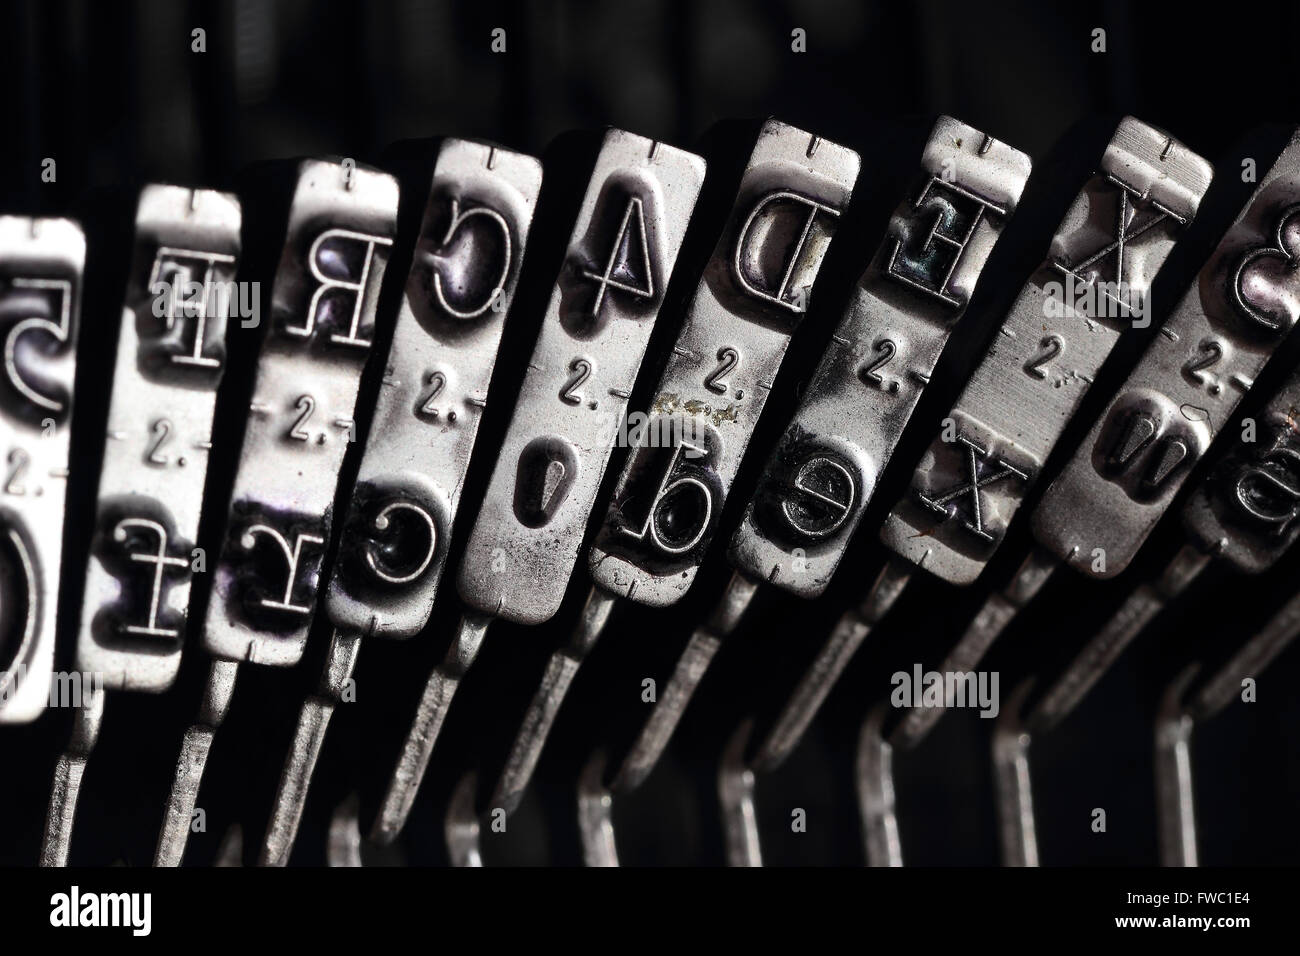 Typewriter Font Stock s & Typewriter Font Stock Alamy